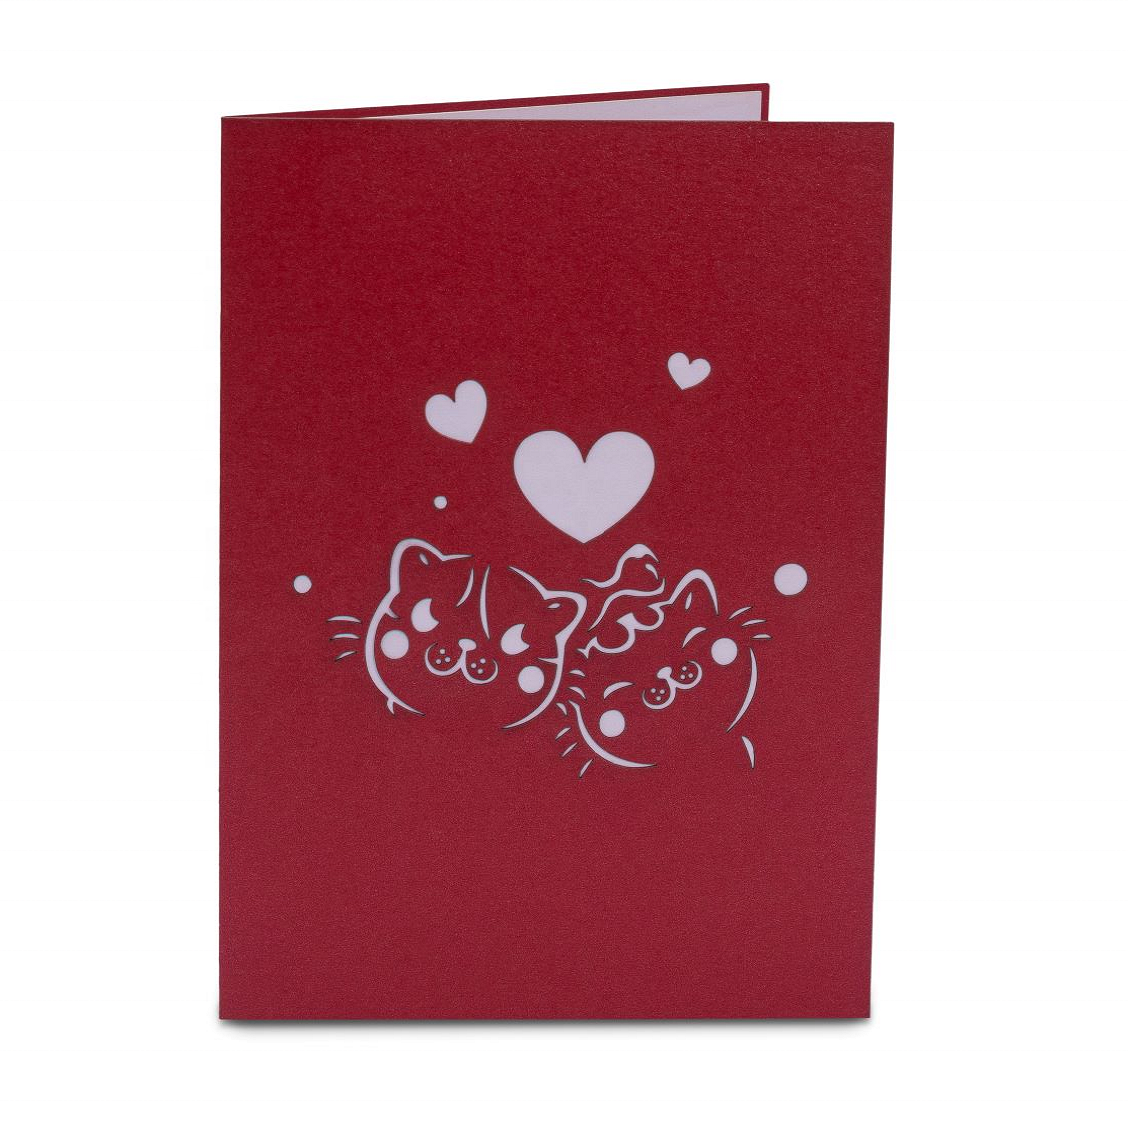 I Love You Valentine Day Cards - Custom Printing Funny Handmade 3D Greeting Cards For Love (Animal: Red/Pink)